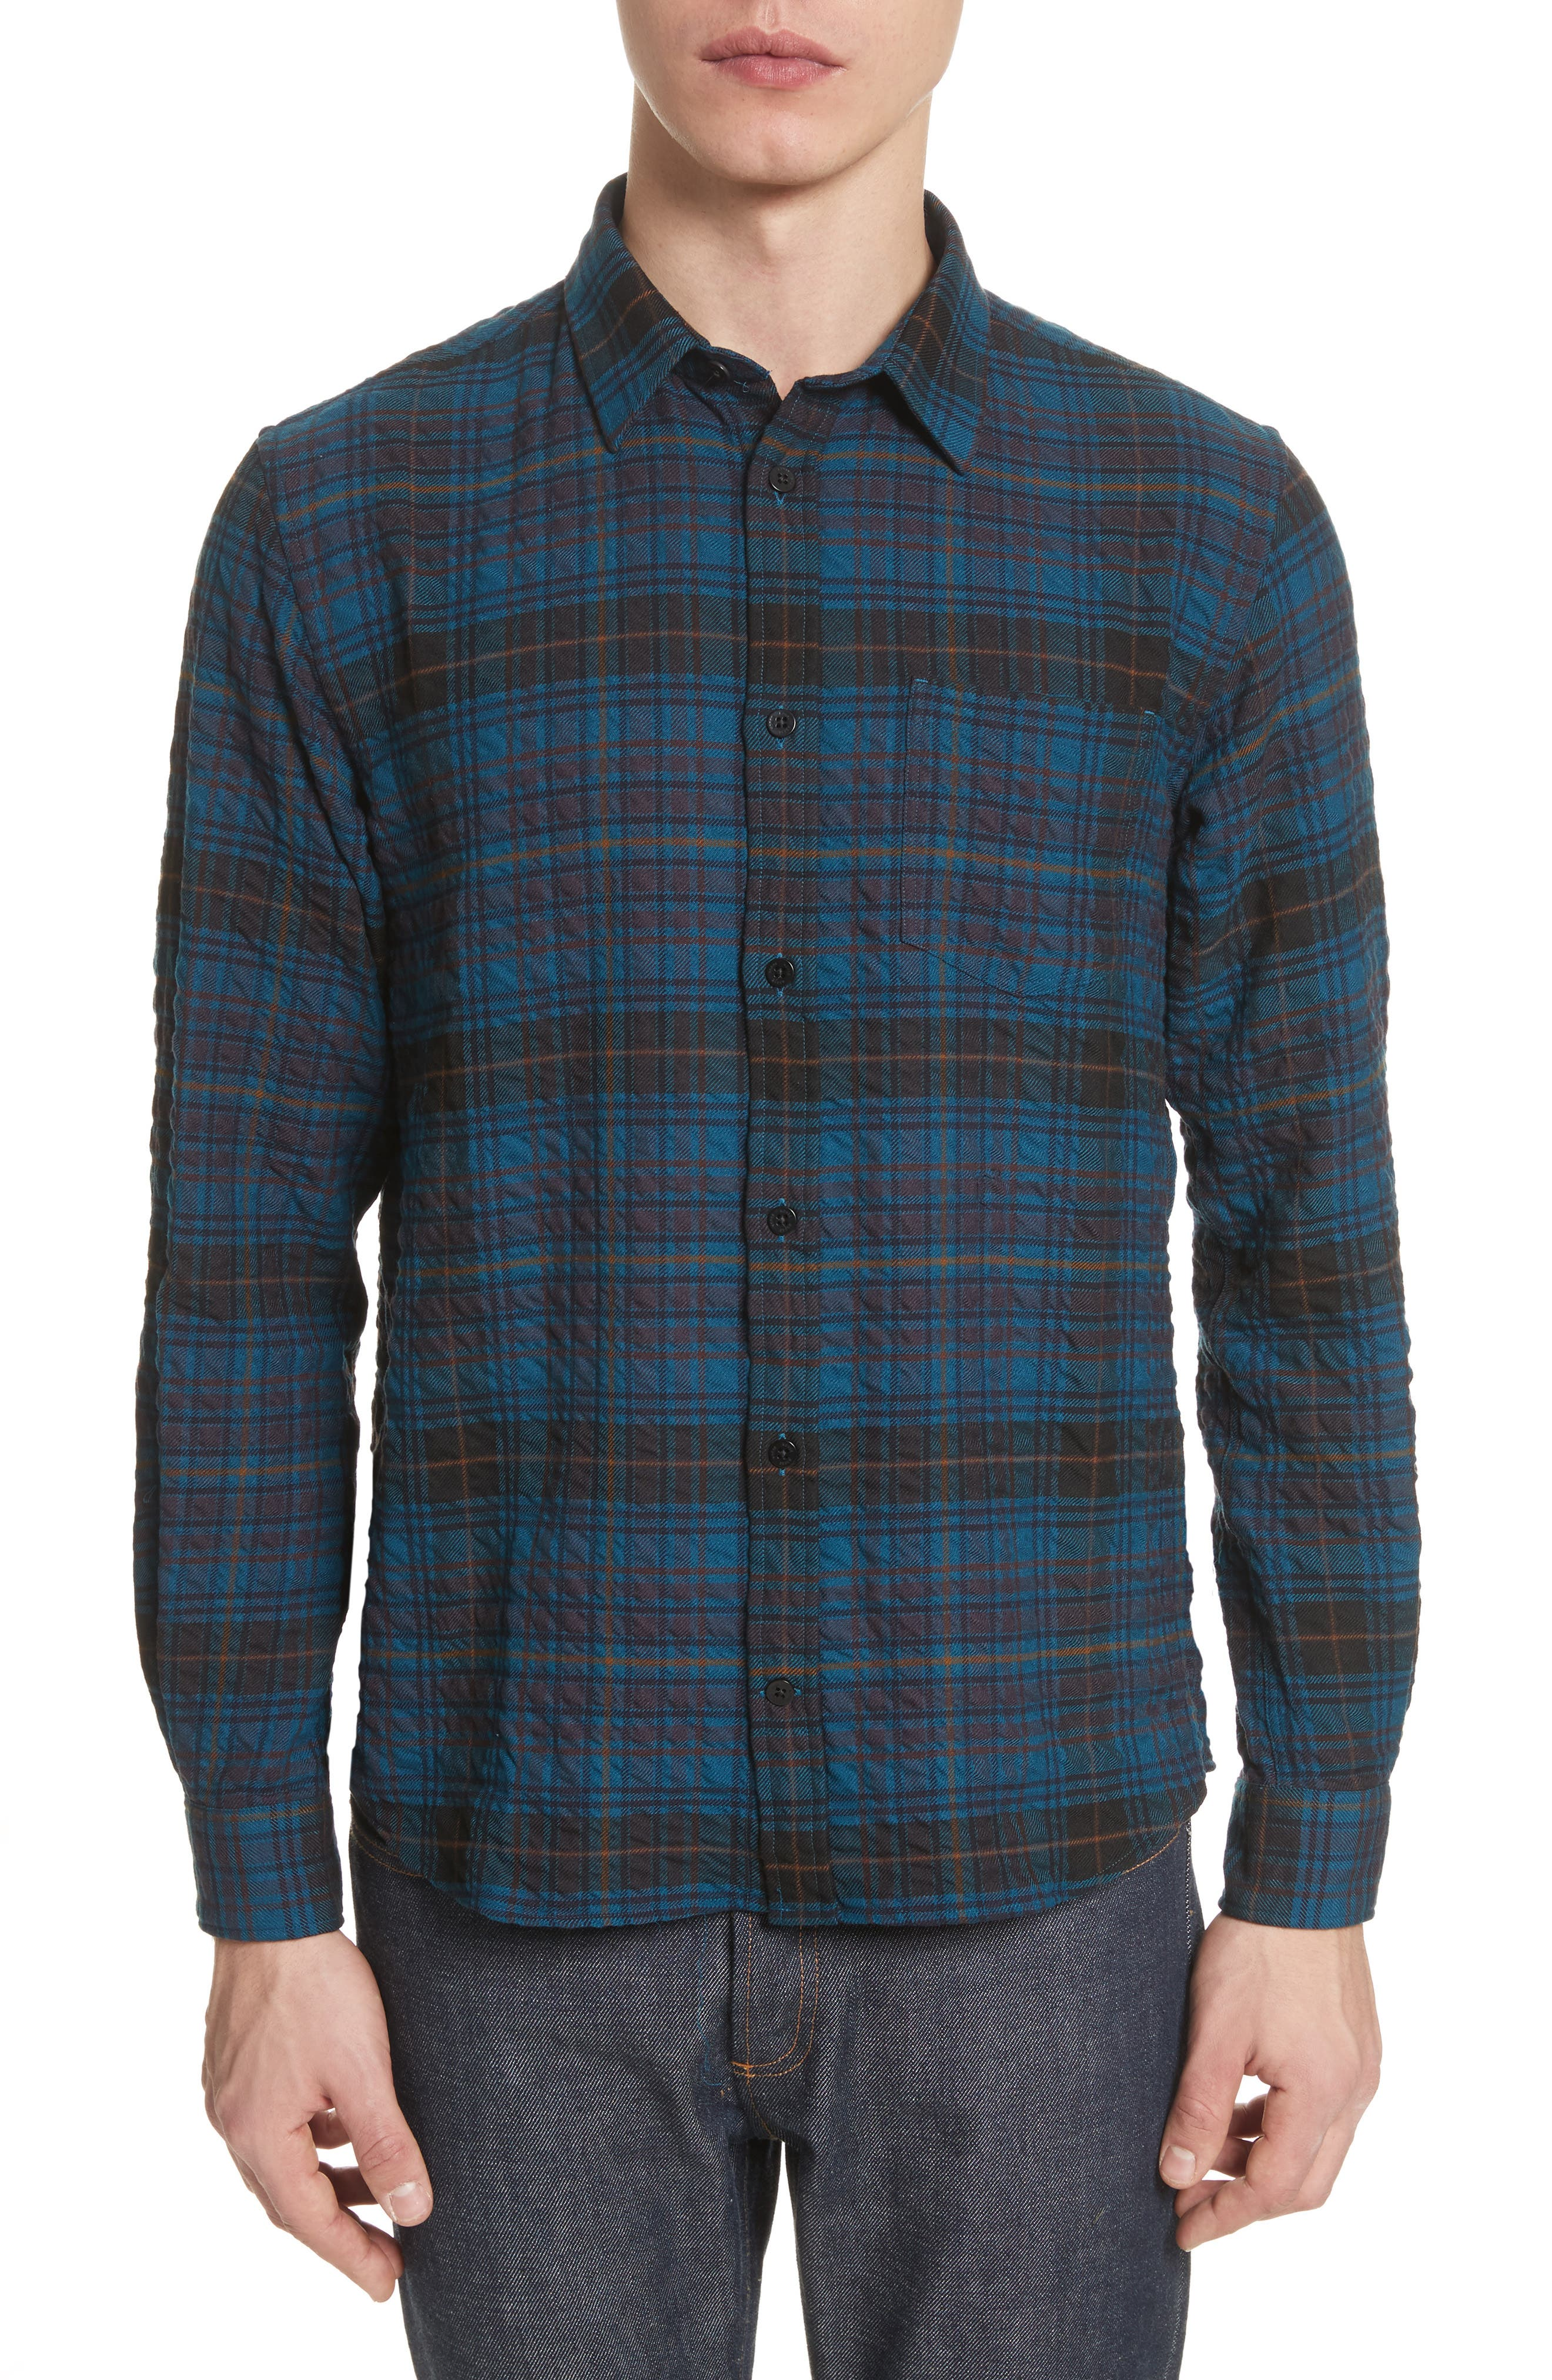 Osvald Textured Check Flannel Shirt,                             Main thumbnail 1, color,                             411